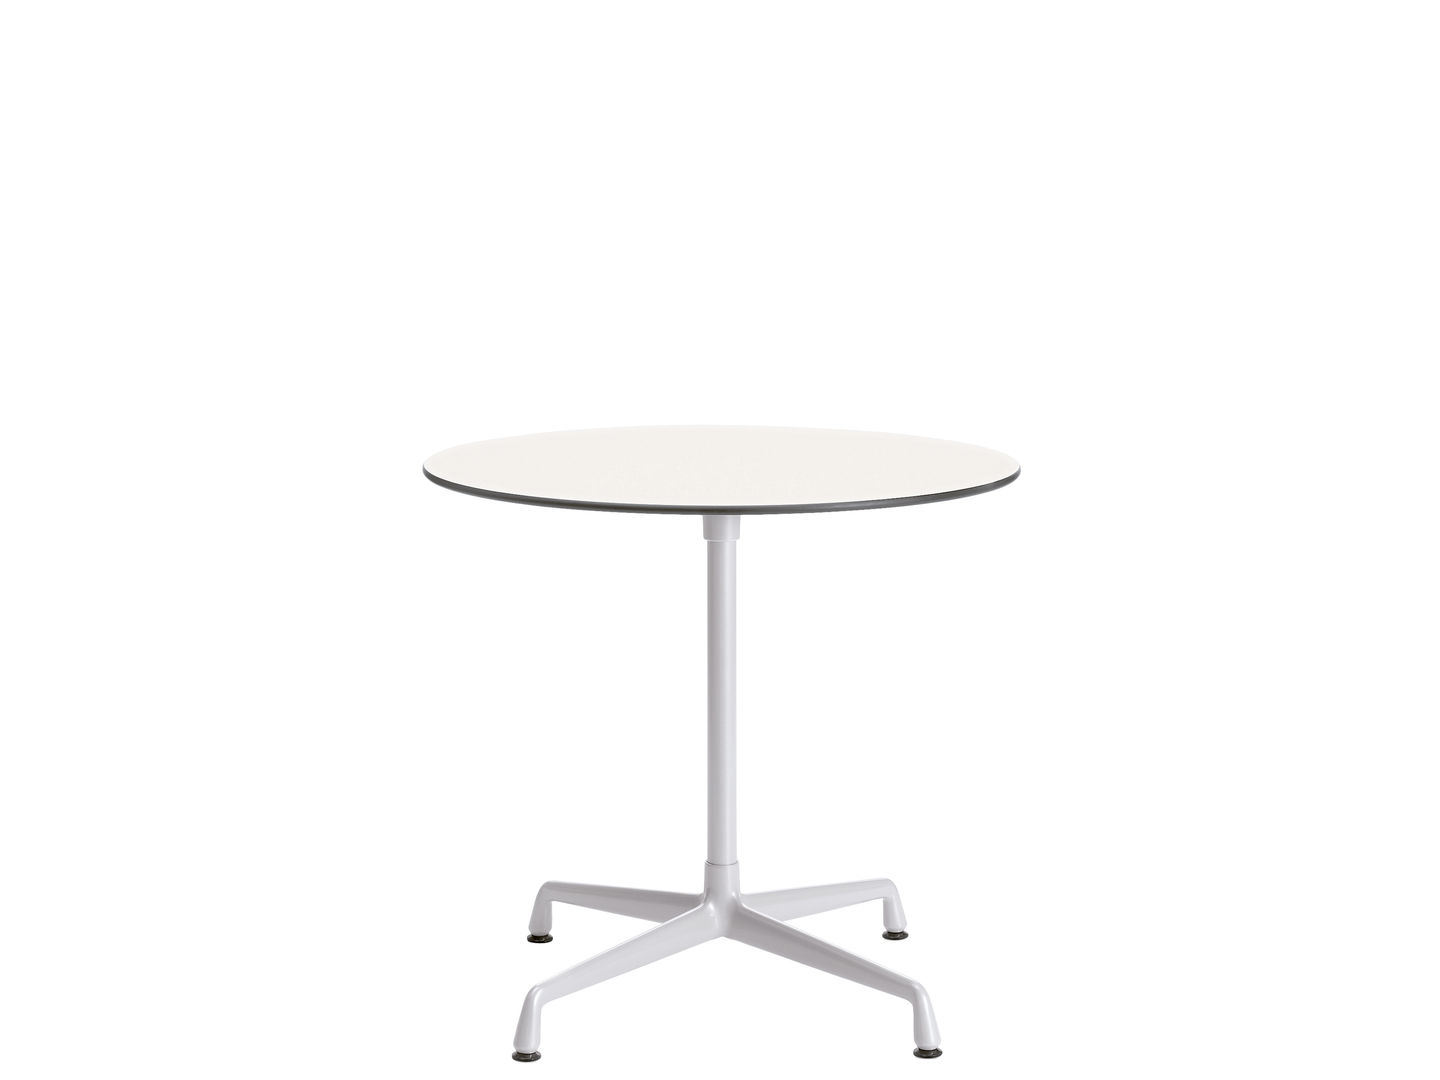 For The Contract Tables Which Were Designed In 1950s Charles And Ray Eames Developed A Universal Base That Could Be Paired With Table Tops